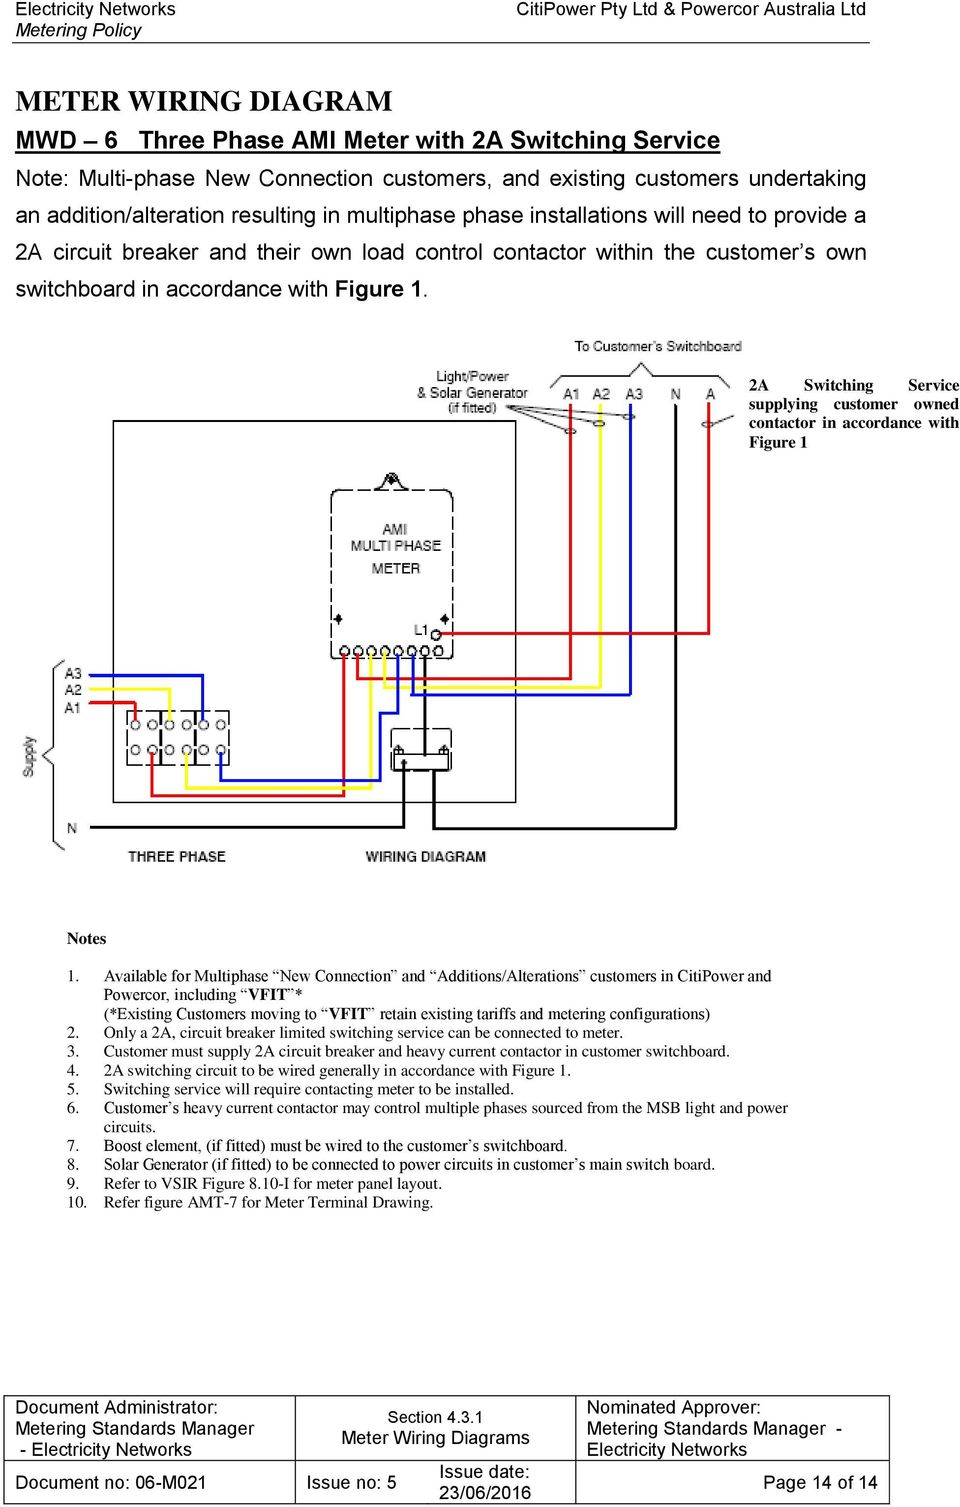 medium resolution of 2a switching service supplying customer owned contactor in accordance with figure 1 1